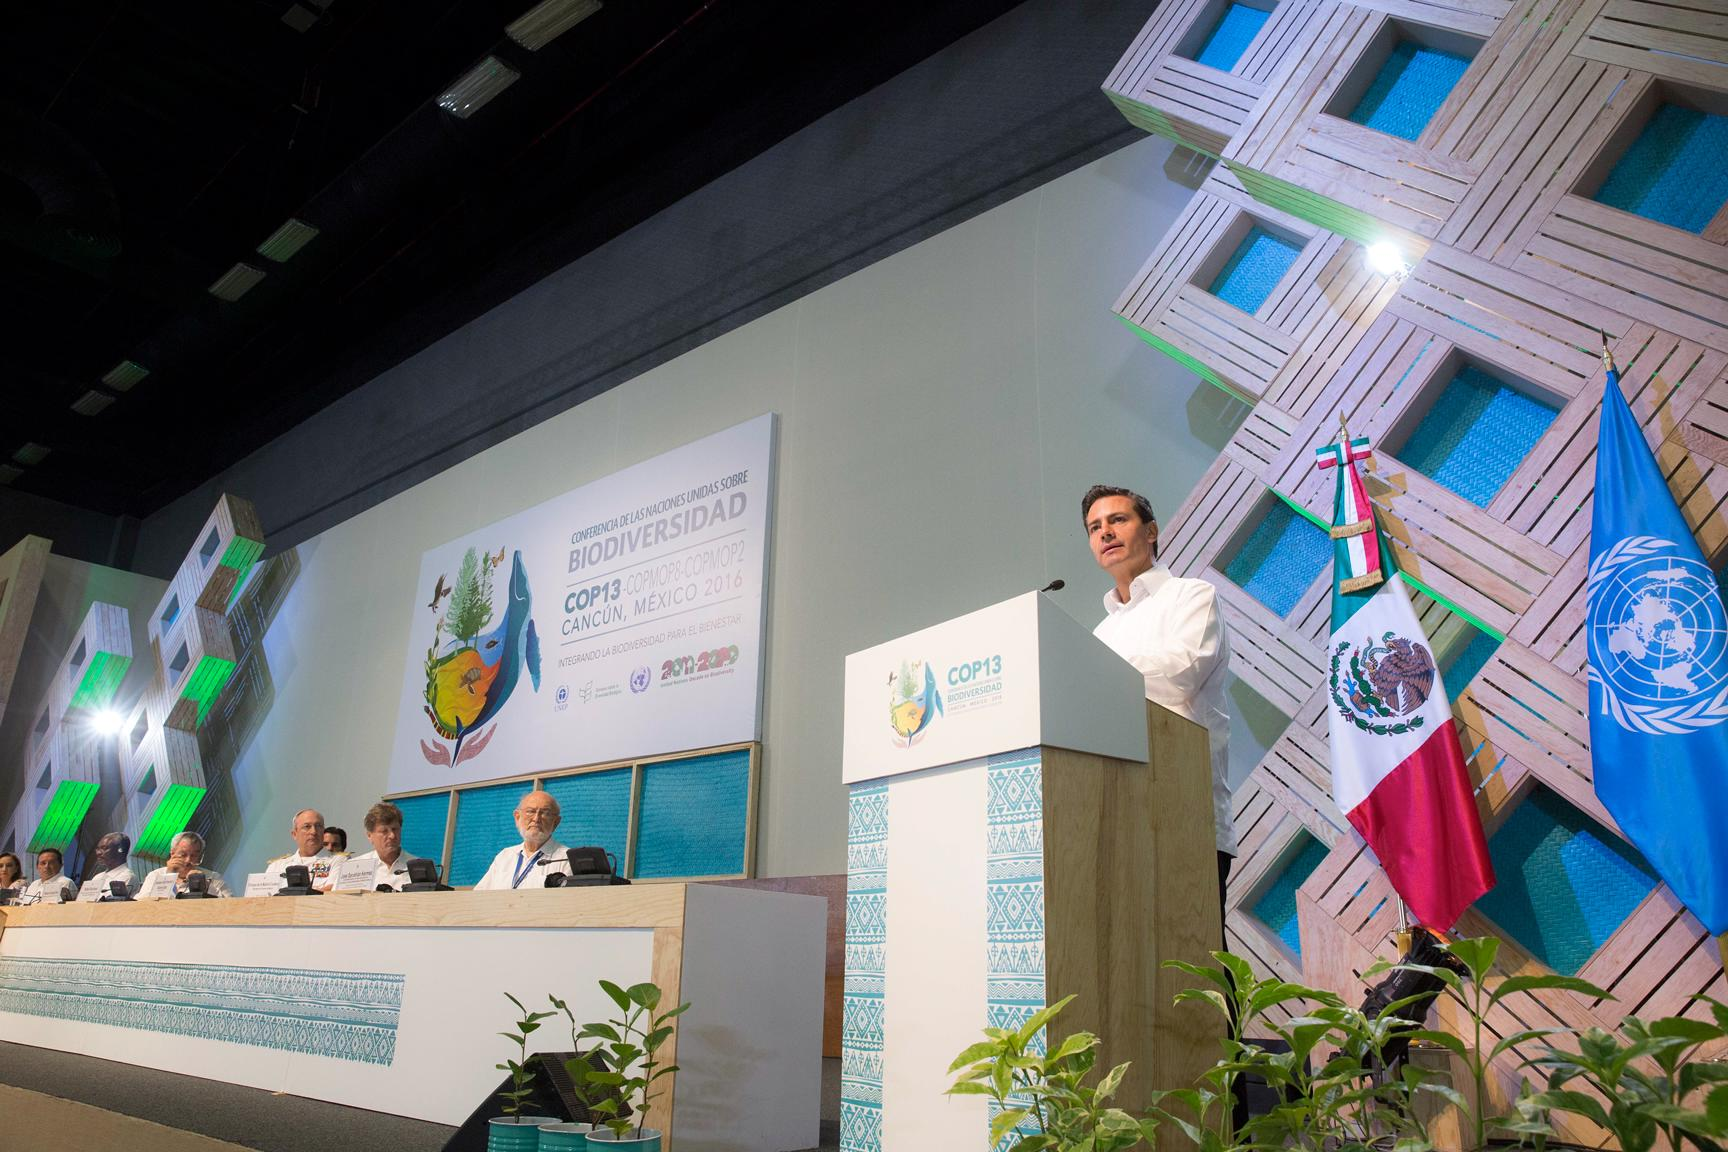 The president inaugurated the13th Conference of the Parties to the United Nations Convention on Biological Diversity (COP13).